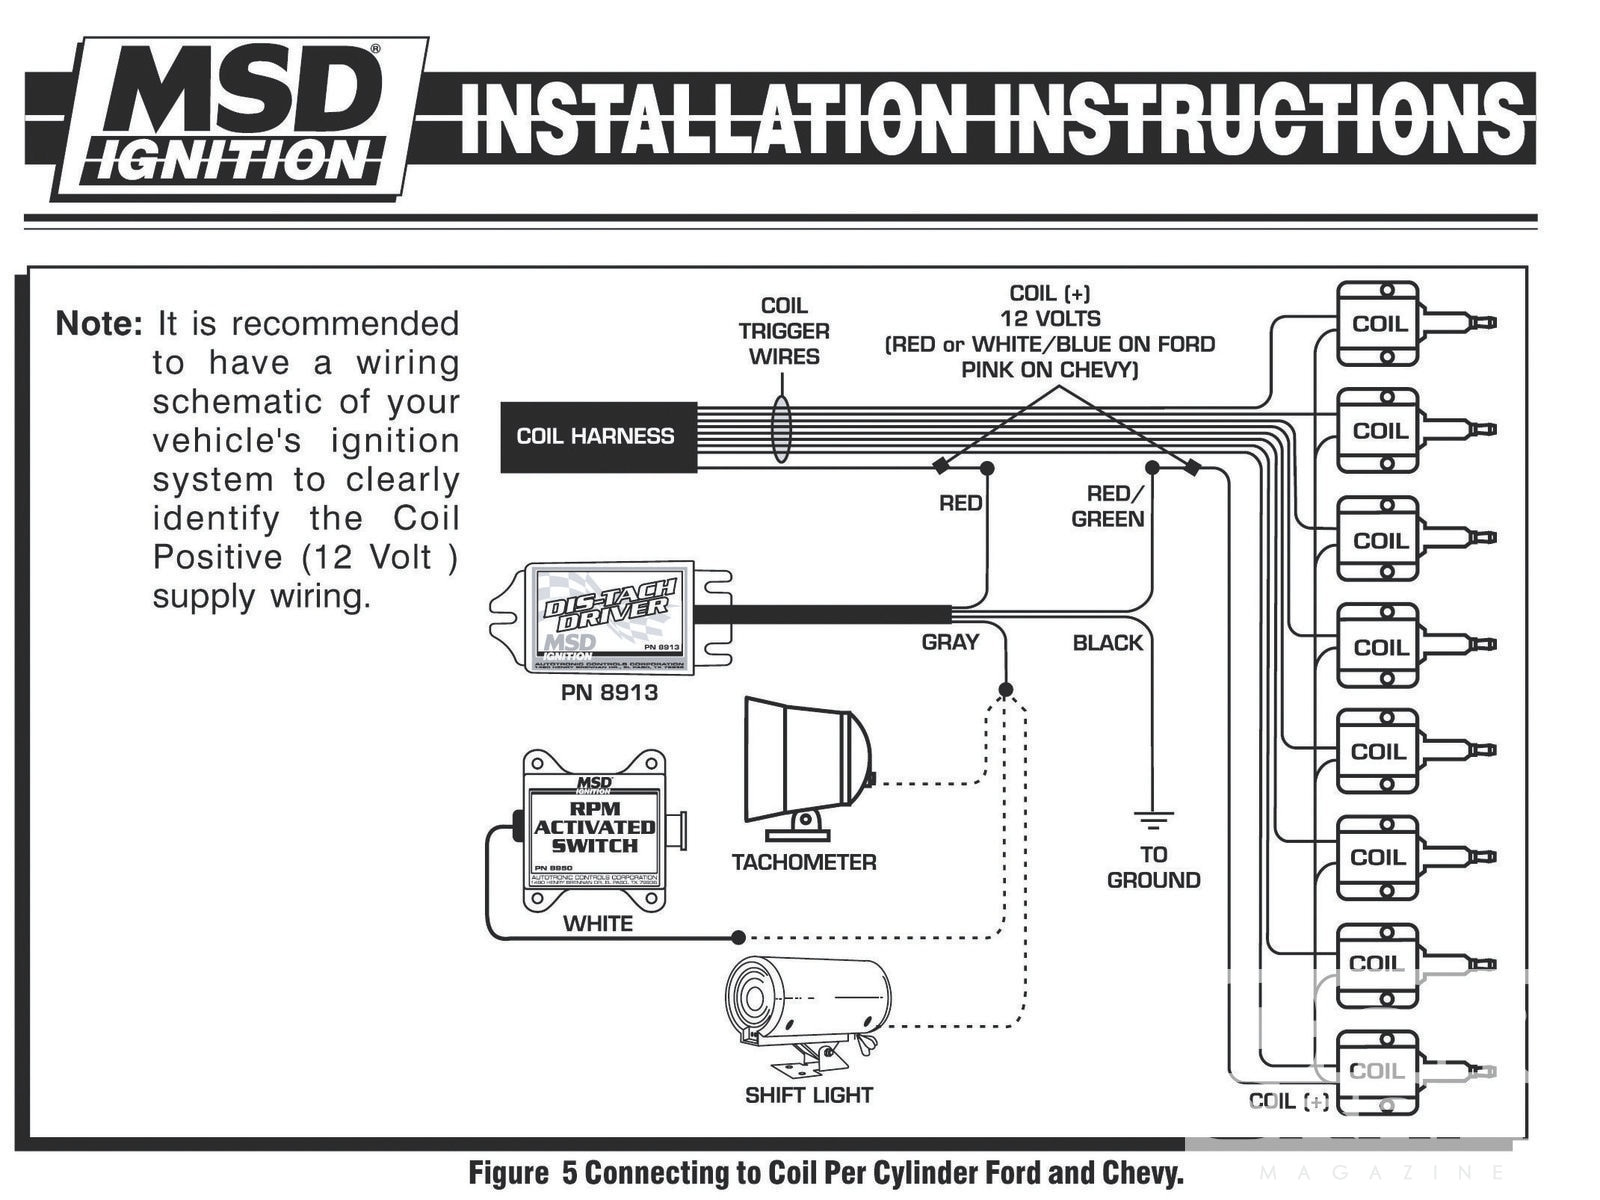 Tac Wire Diagram Auto Electrical Wiring 12 Volt Conversion Ford 800 Tel Tach 23 Images